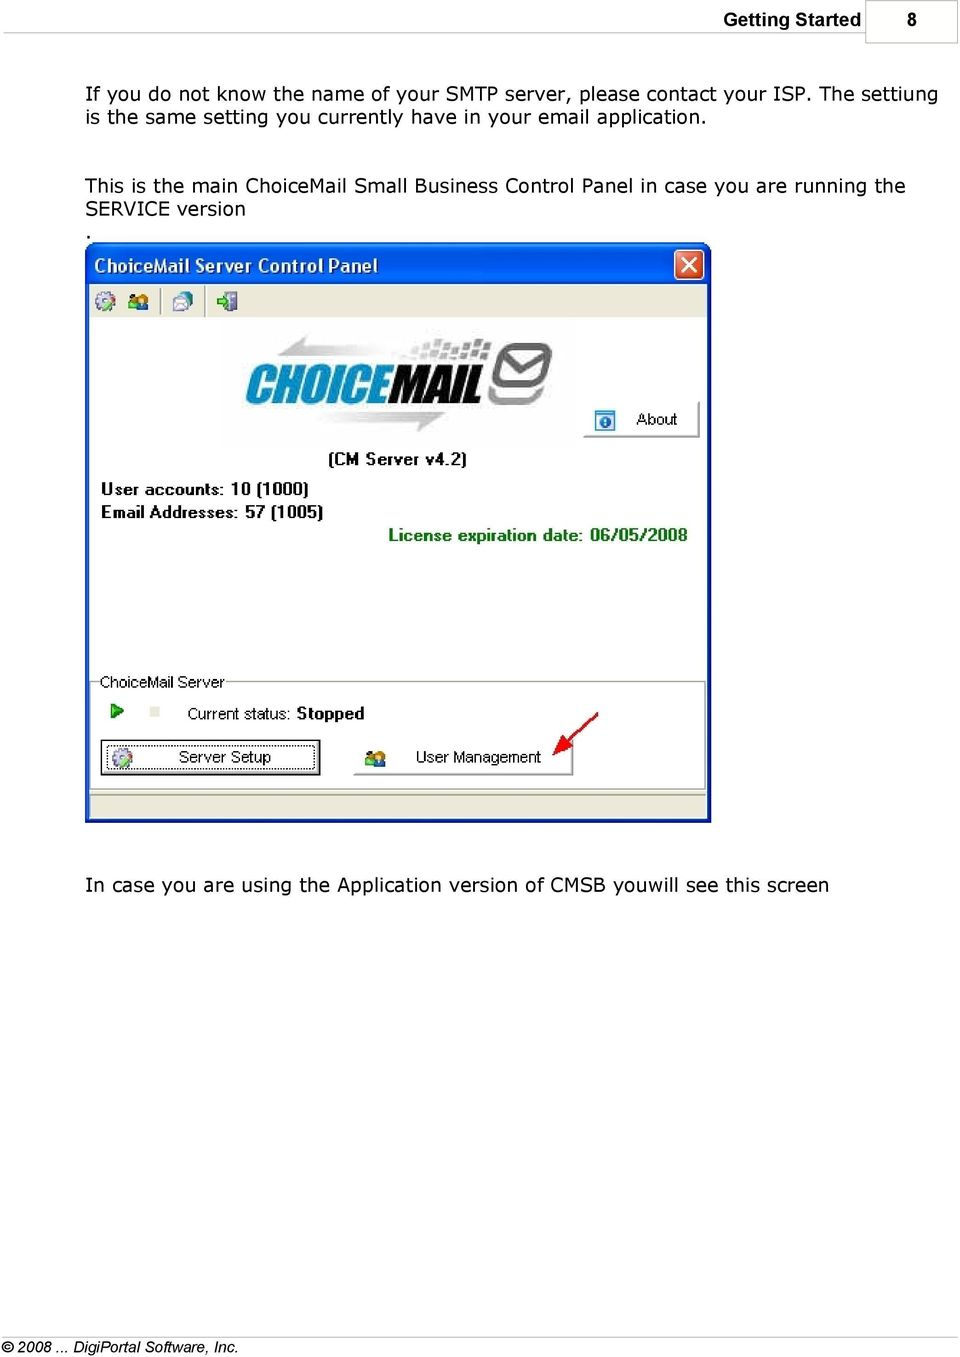 This is the main ChoiceMail Small Business Control Panel in case you are running the